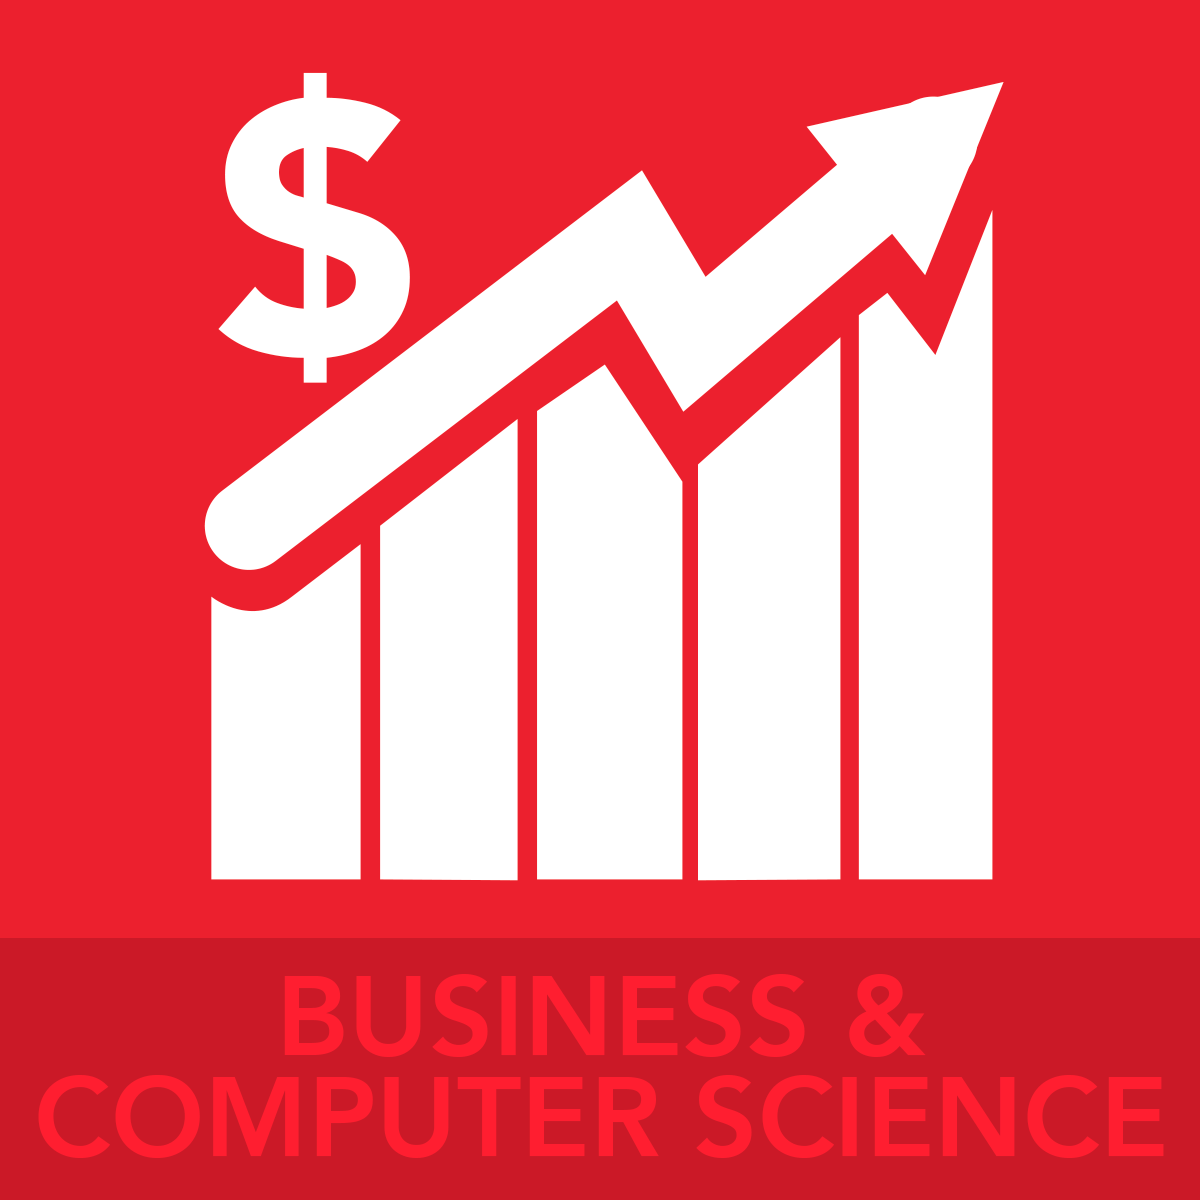 BUSINESS AND COMPUTER SCIENCE ICON BUTTON